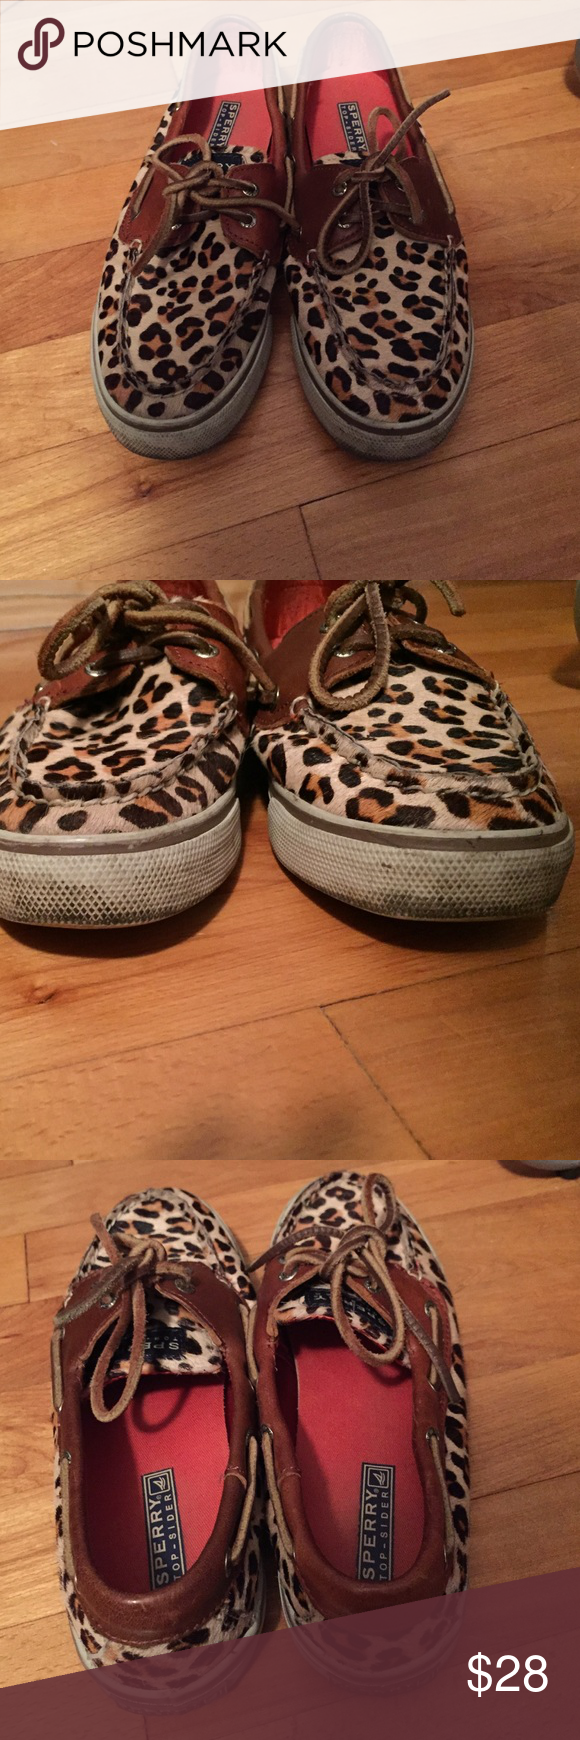 Sperry top siders Cheetah print Sperrys! They are used with scuffs on the soles. Sperry Top-Sider Shoes Flats & Loafers